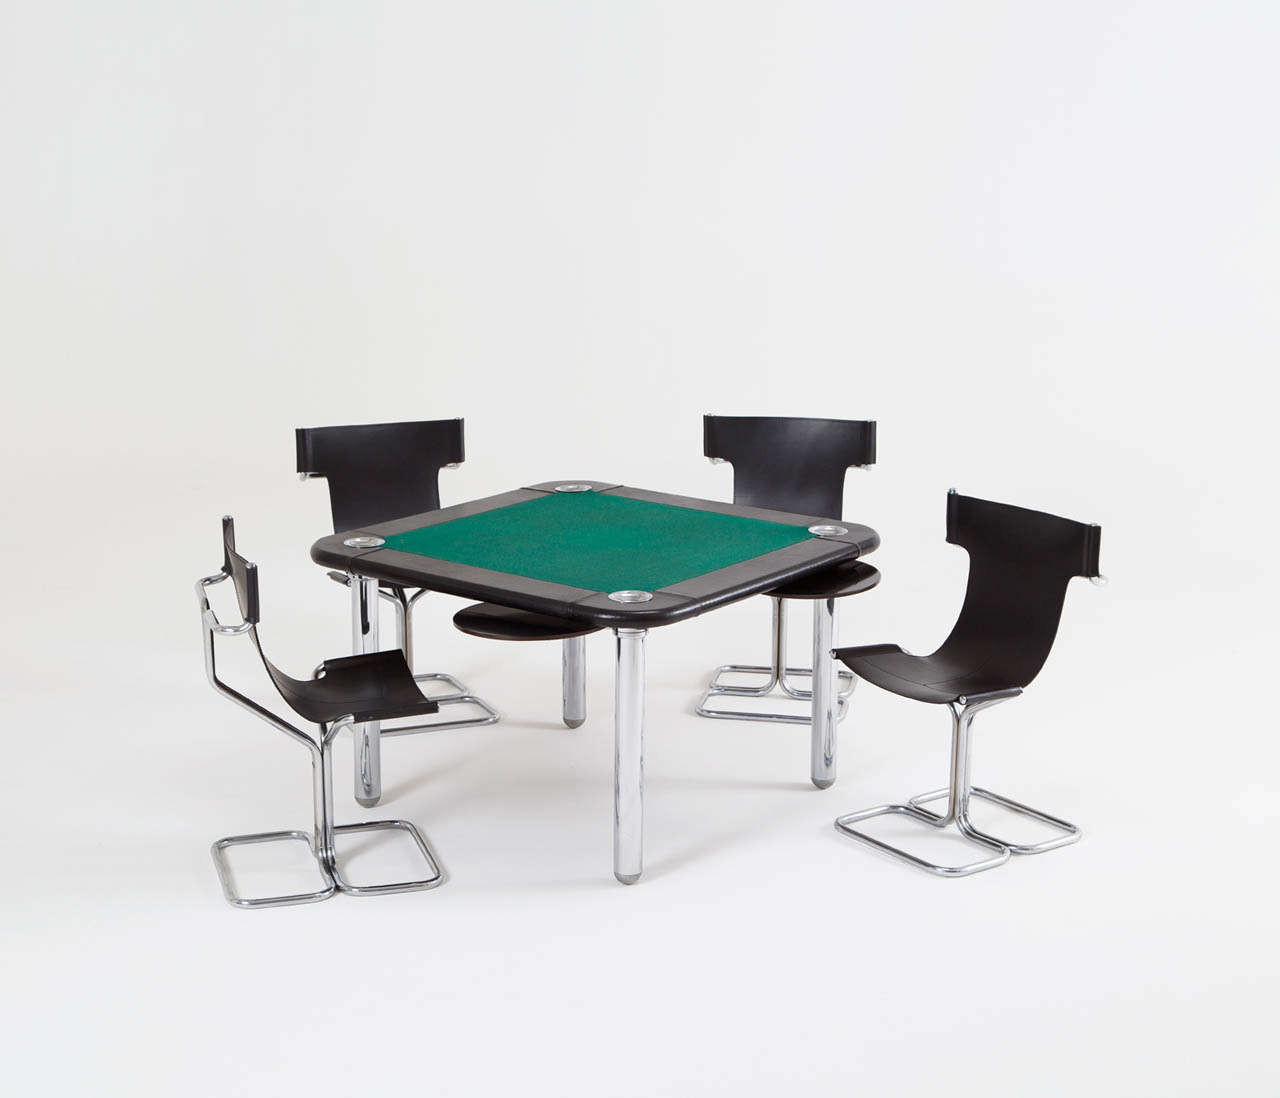 Excellent gaming table in chrome and leather finish. The table has a green gaming cloth with leather edges with four stainless steel bowls for gaming chips, and chromed tubular legs.  The four chairs are also in original condition in leather with